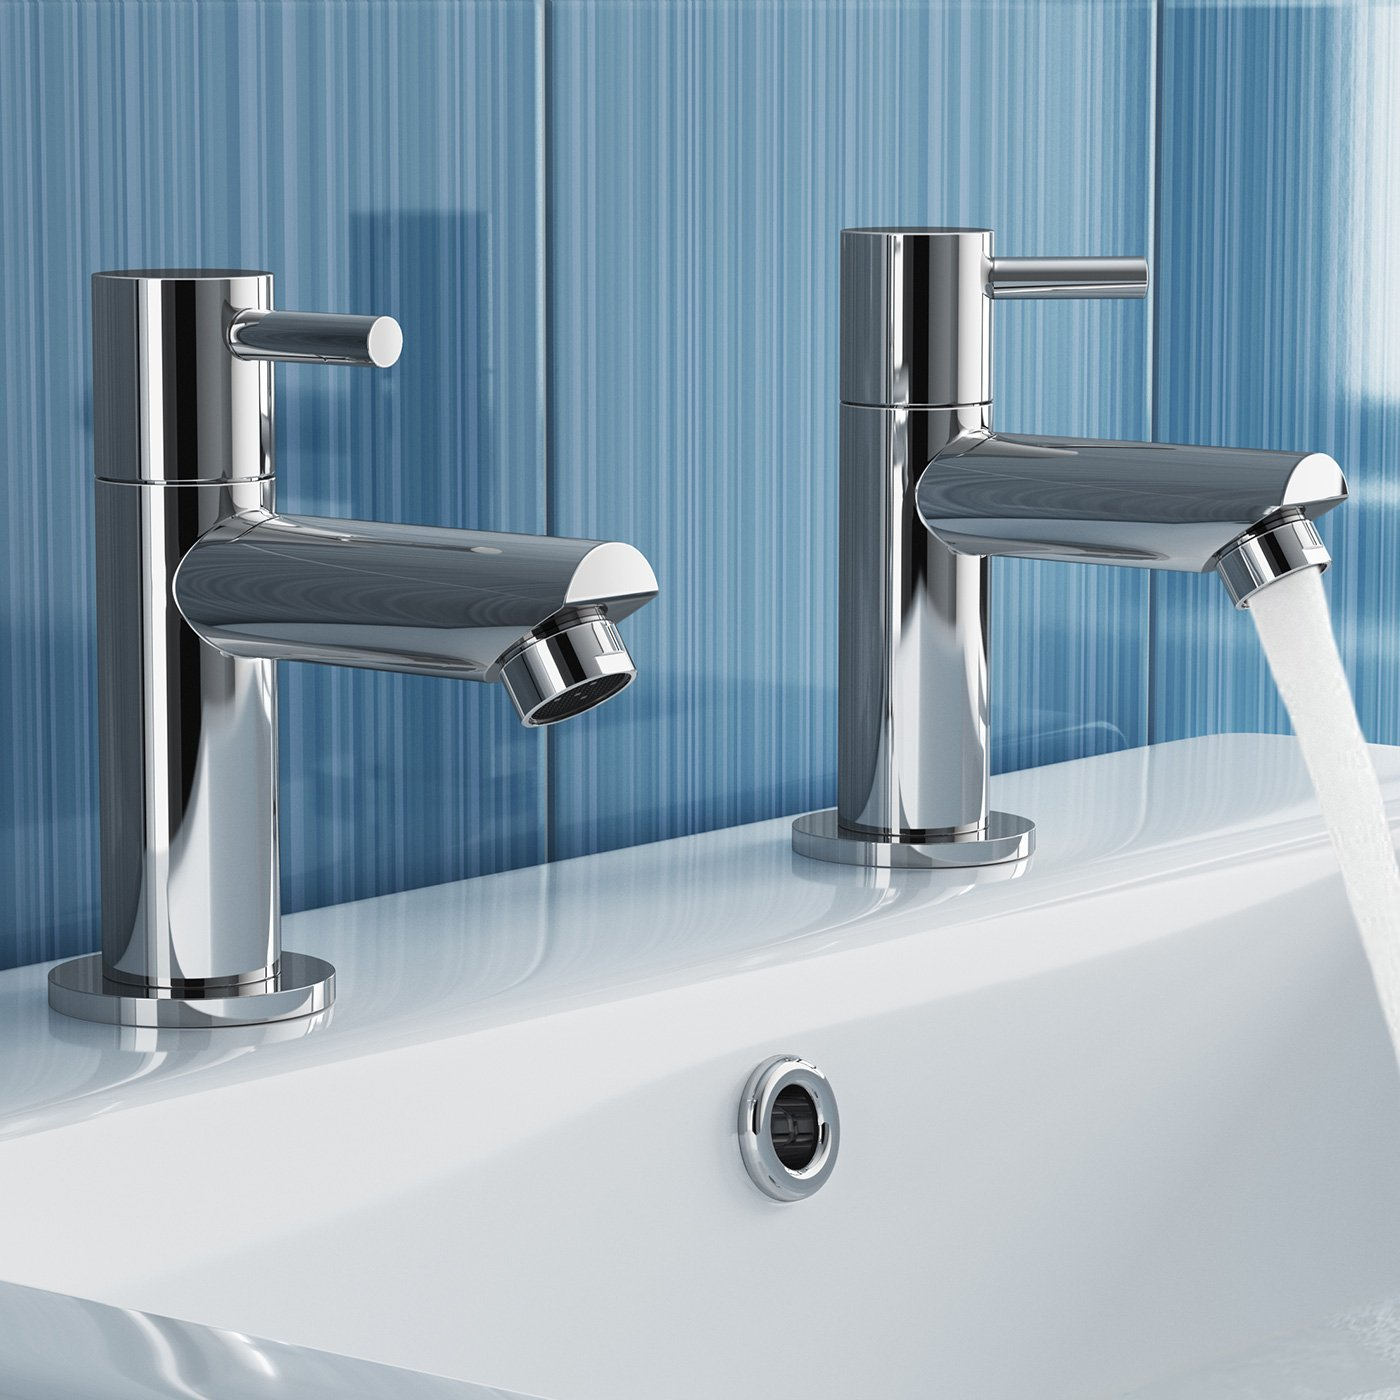 iBathUK Pair of Hot and Cold Basin Sink Mixer Taps Chrome Bathroom ...